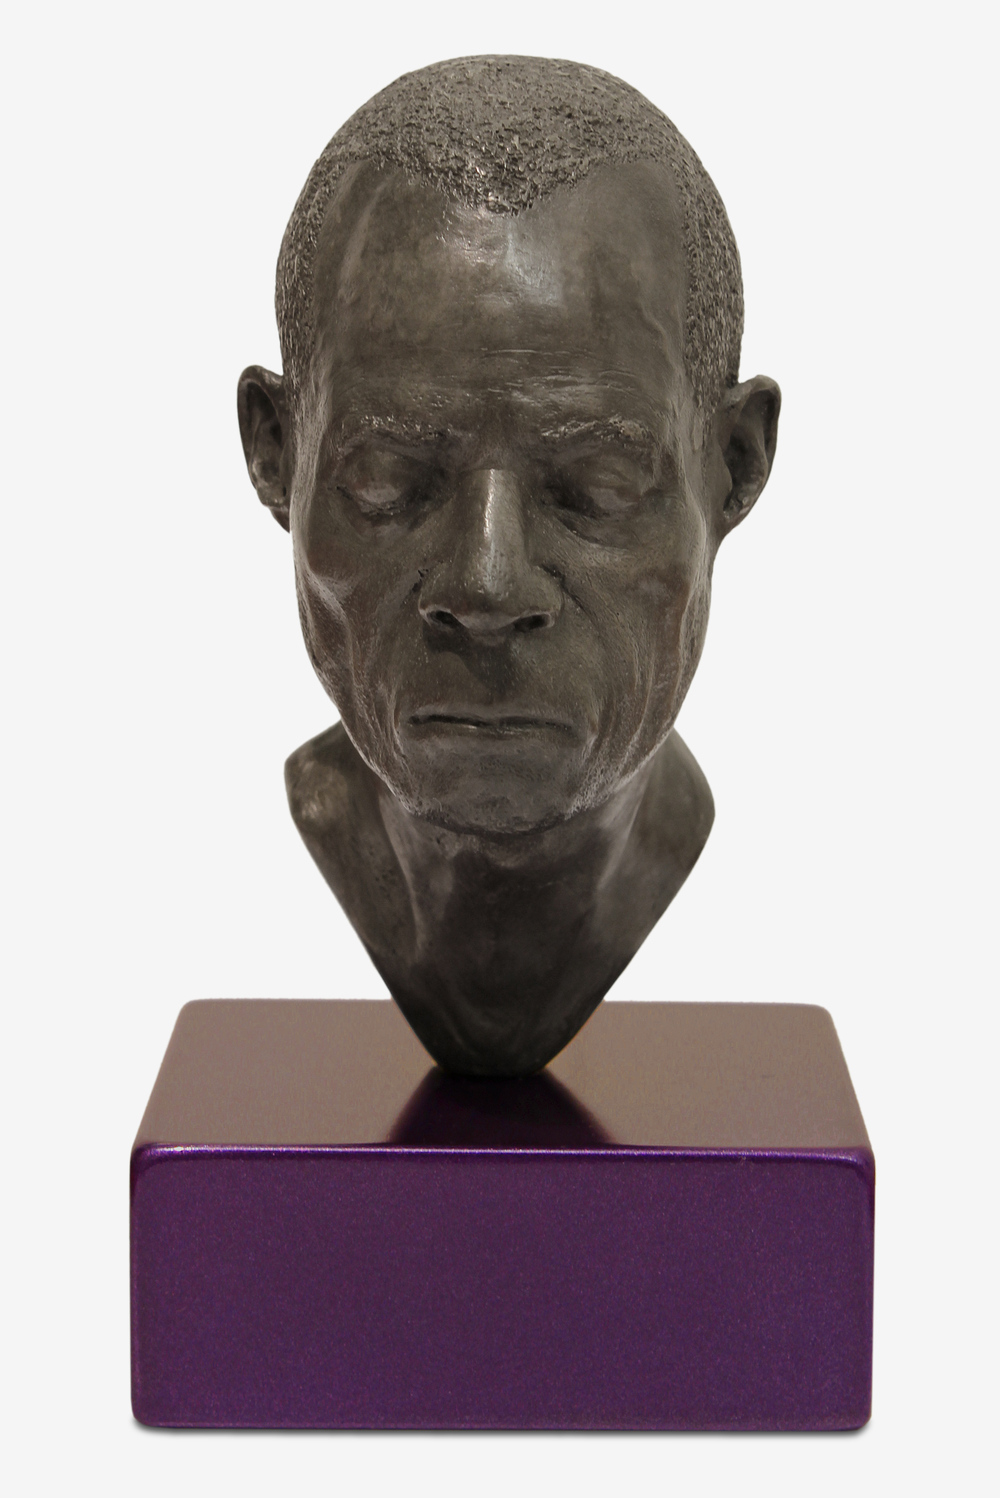 Tom Price, Head 4 (Coloured Base), 2012, Silvered bronze, Perspex and spraypaint, 14.7 x 8 x 10.3 cm.jpg